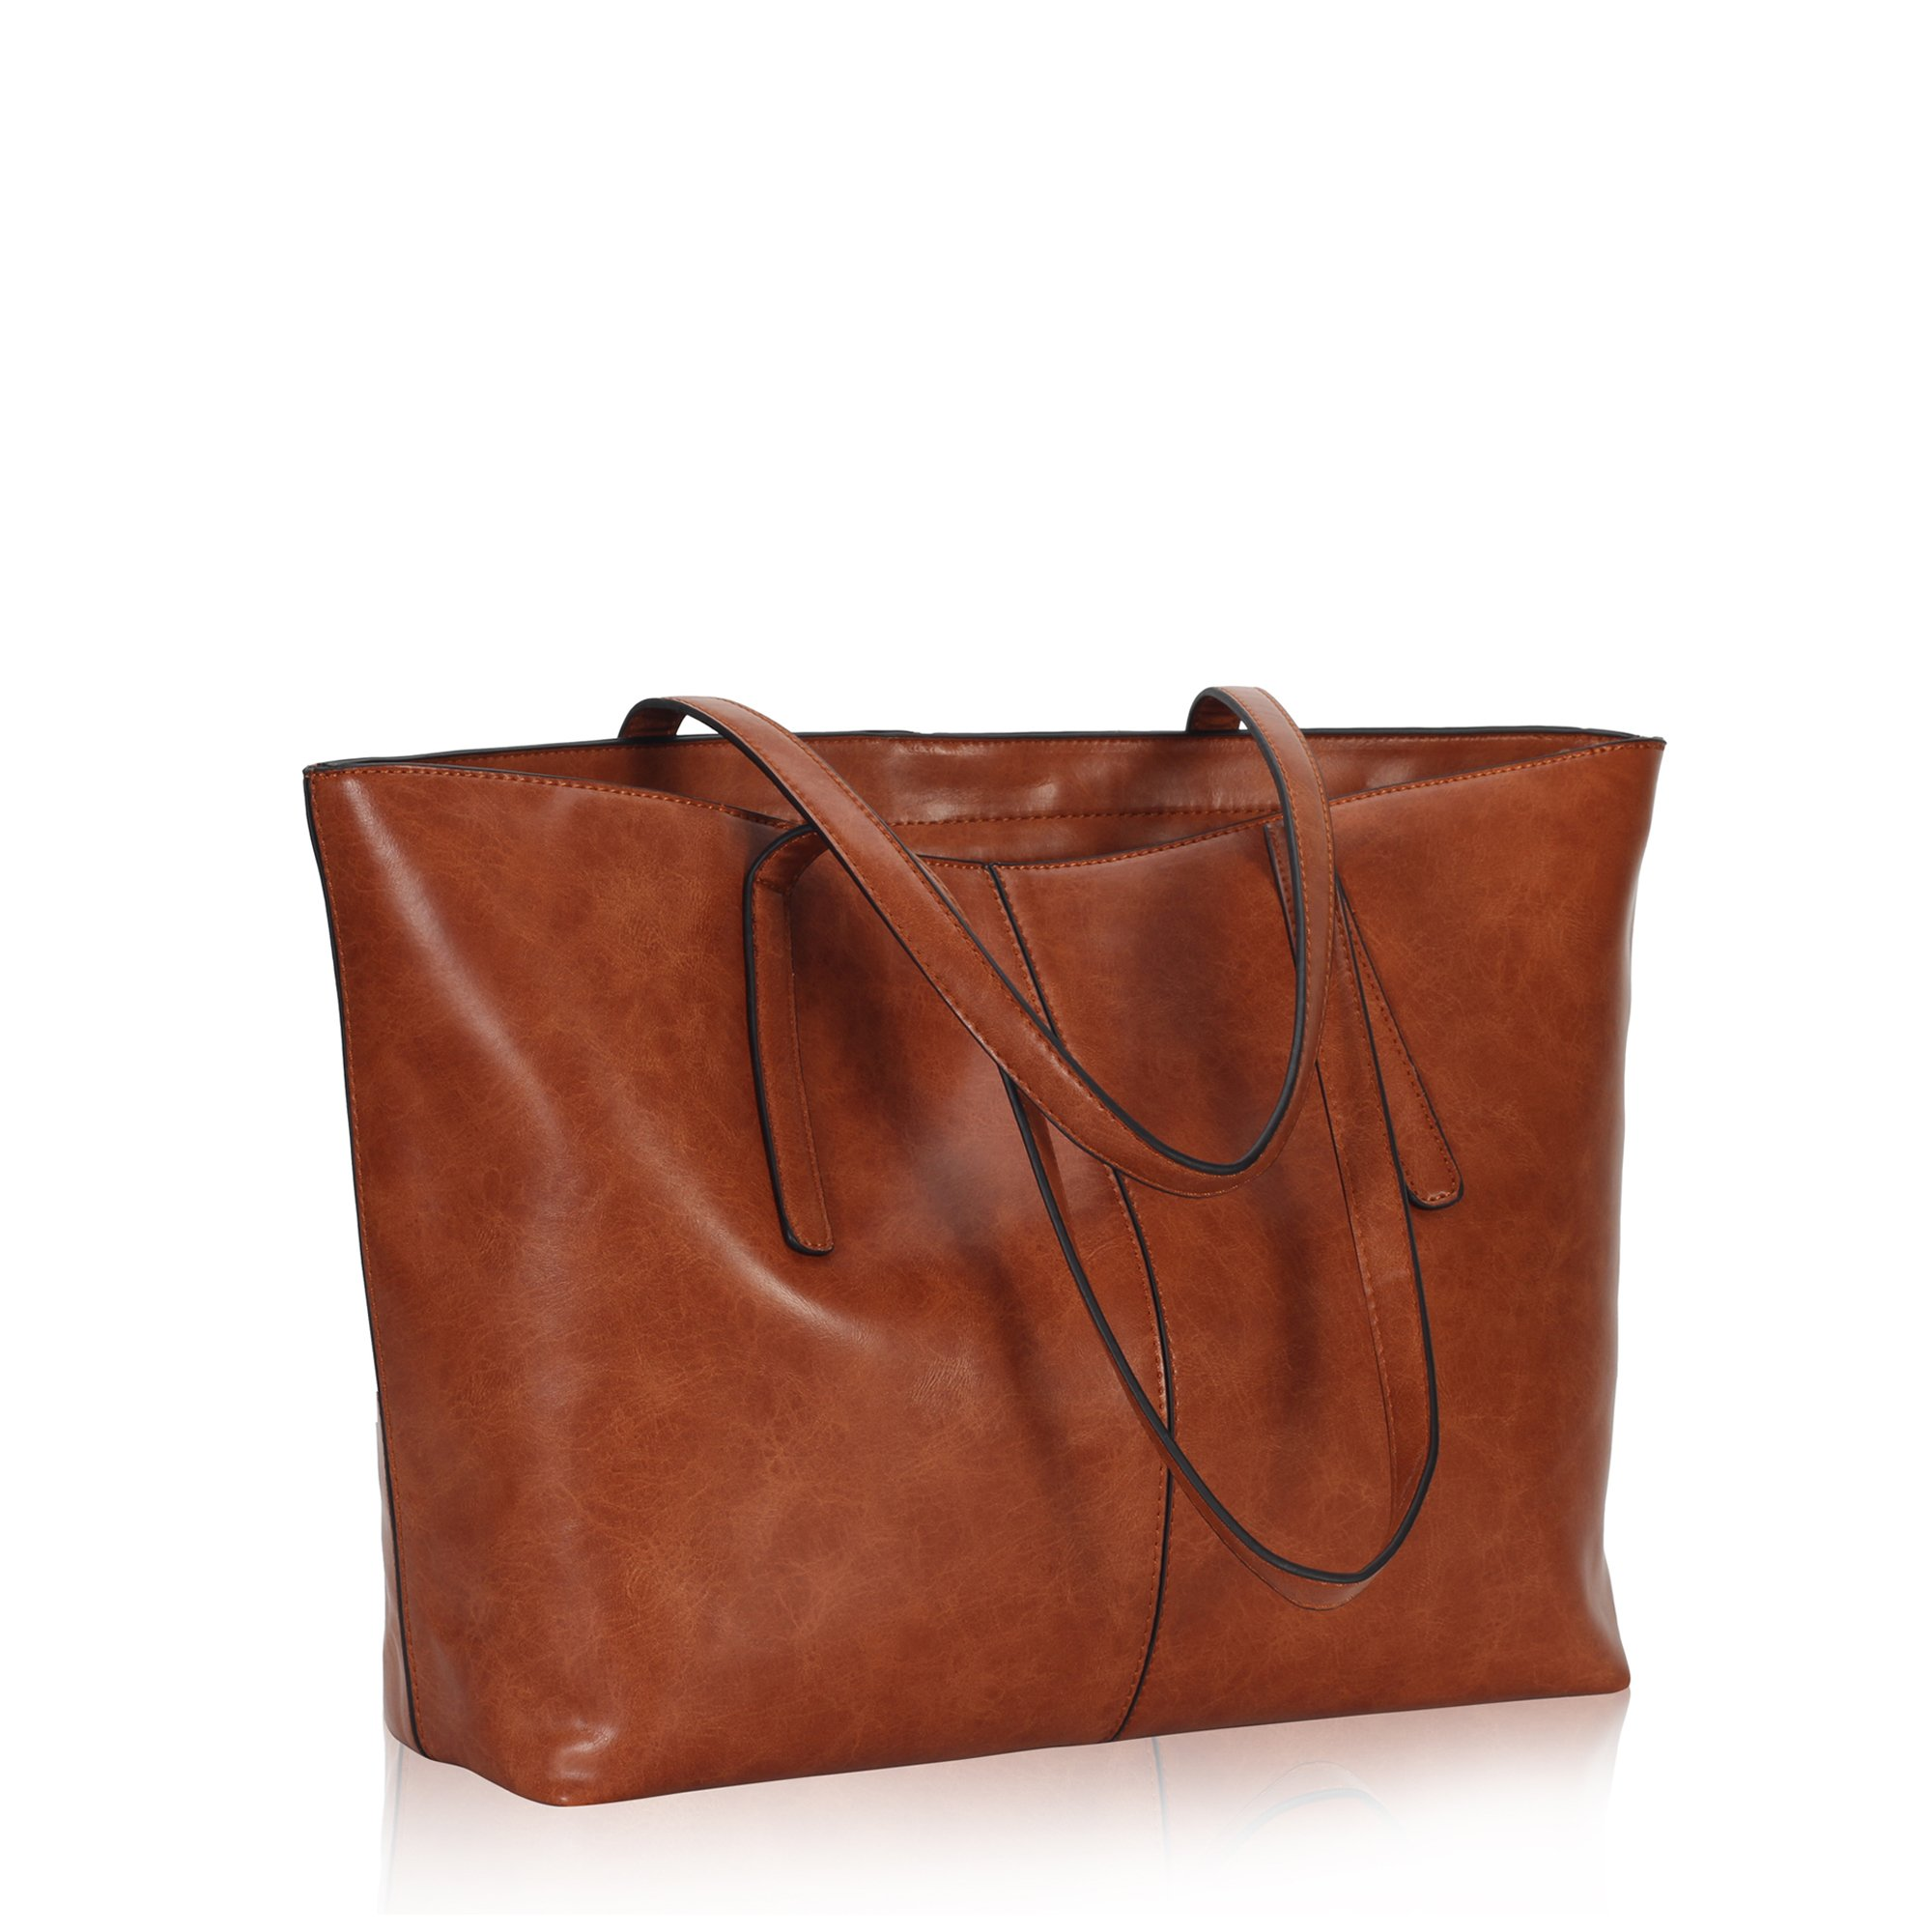 Hynes Victory Women Large Satchel Handbags Shoulder Tote Bag with Pouch Brown